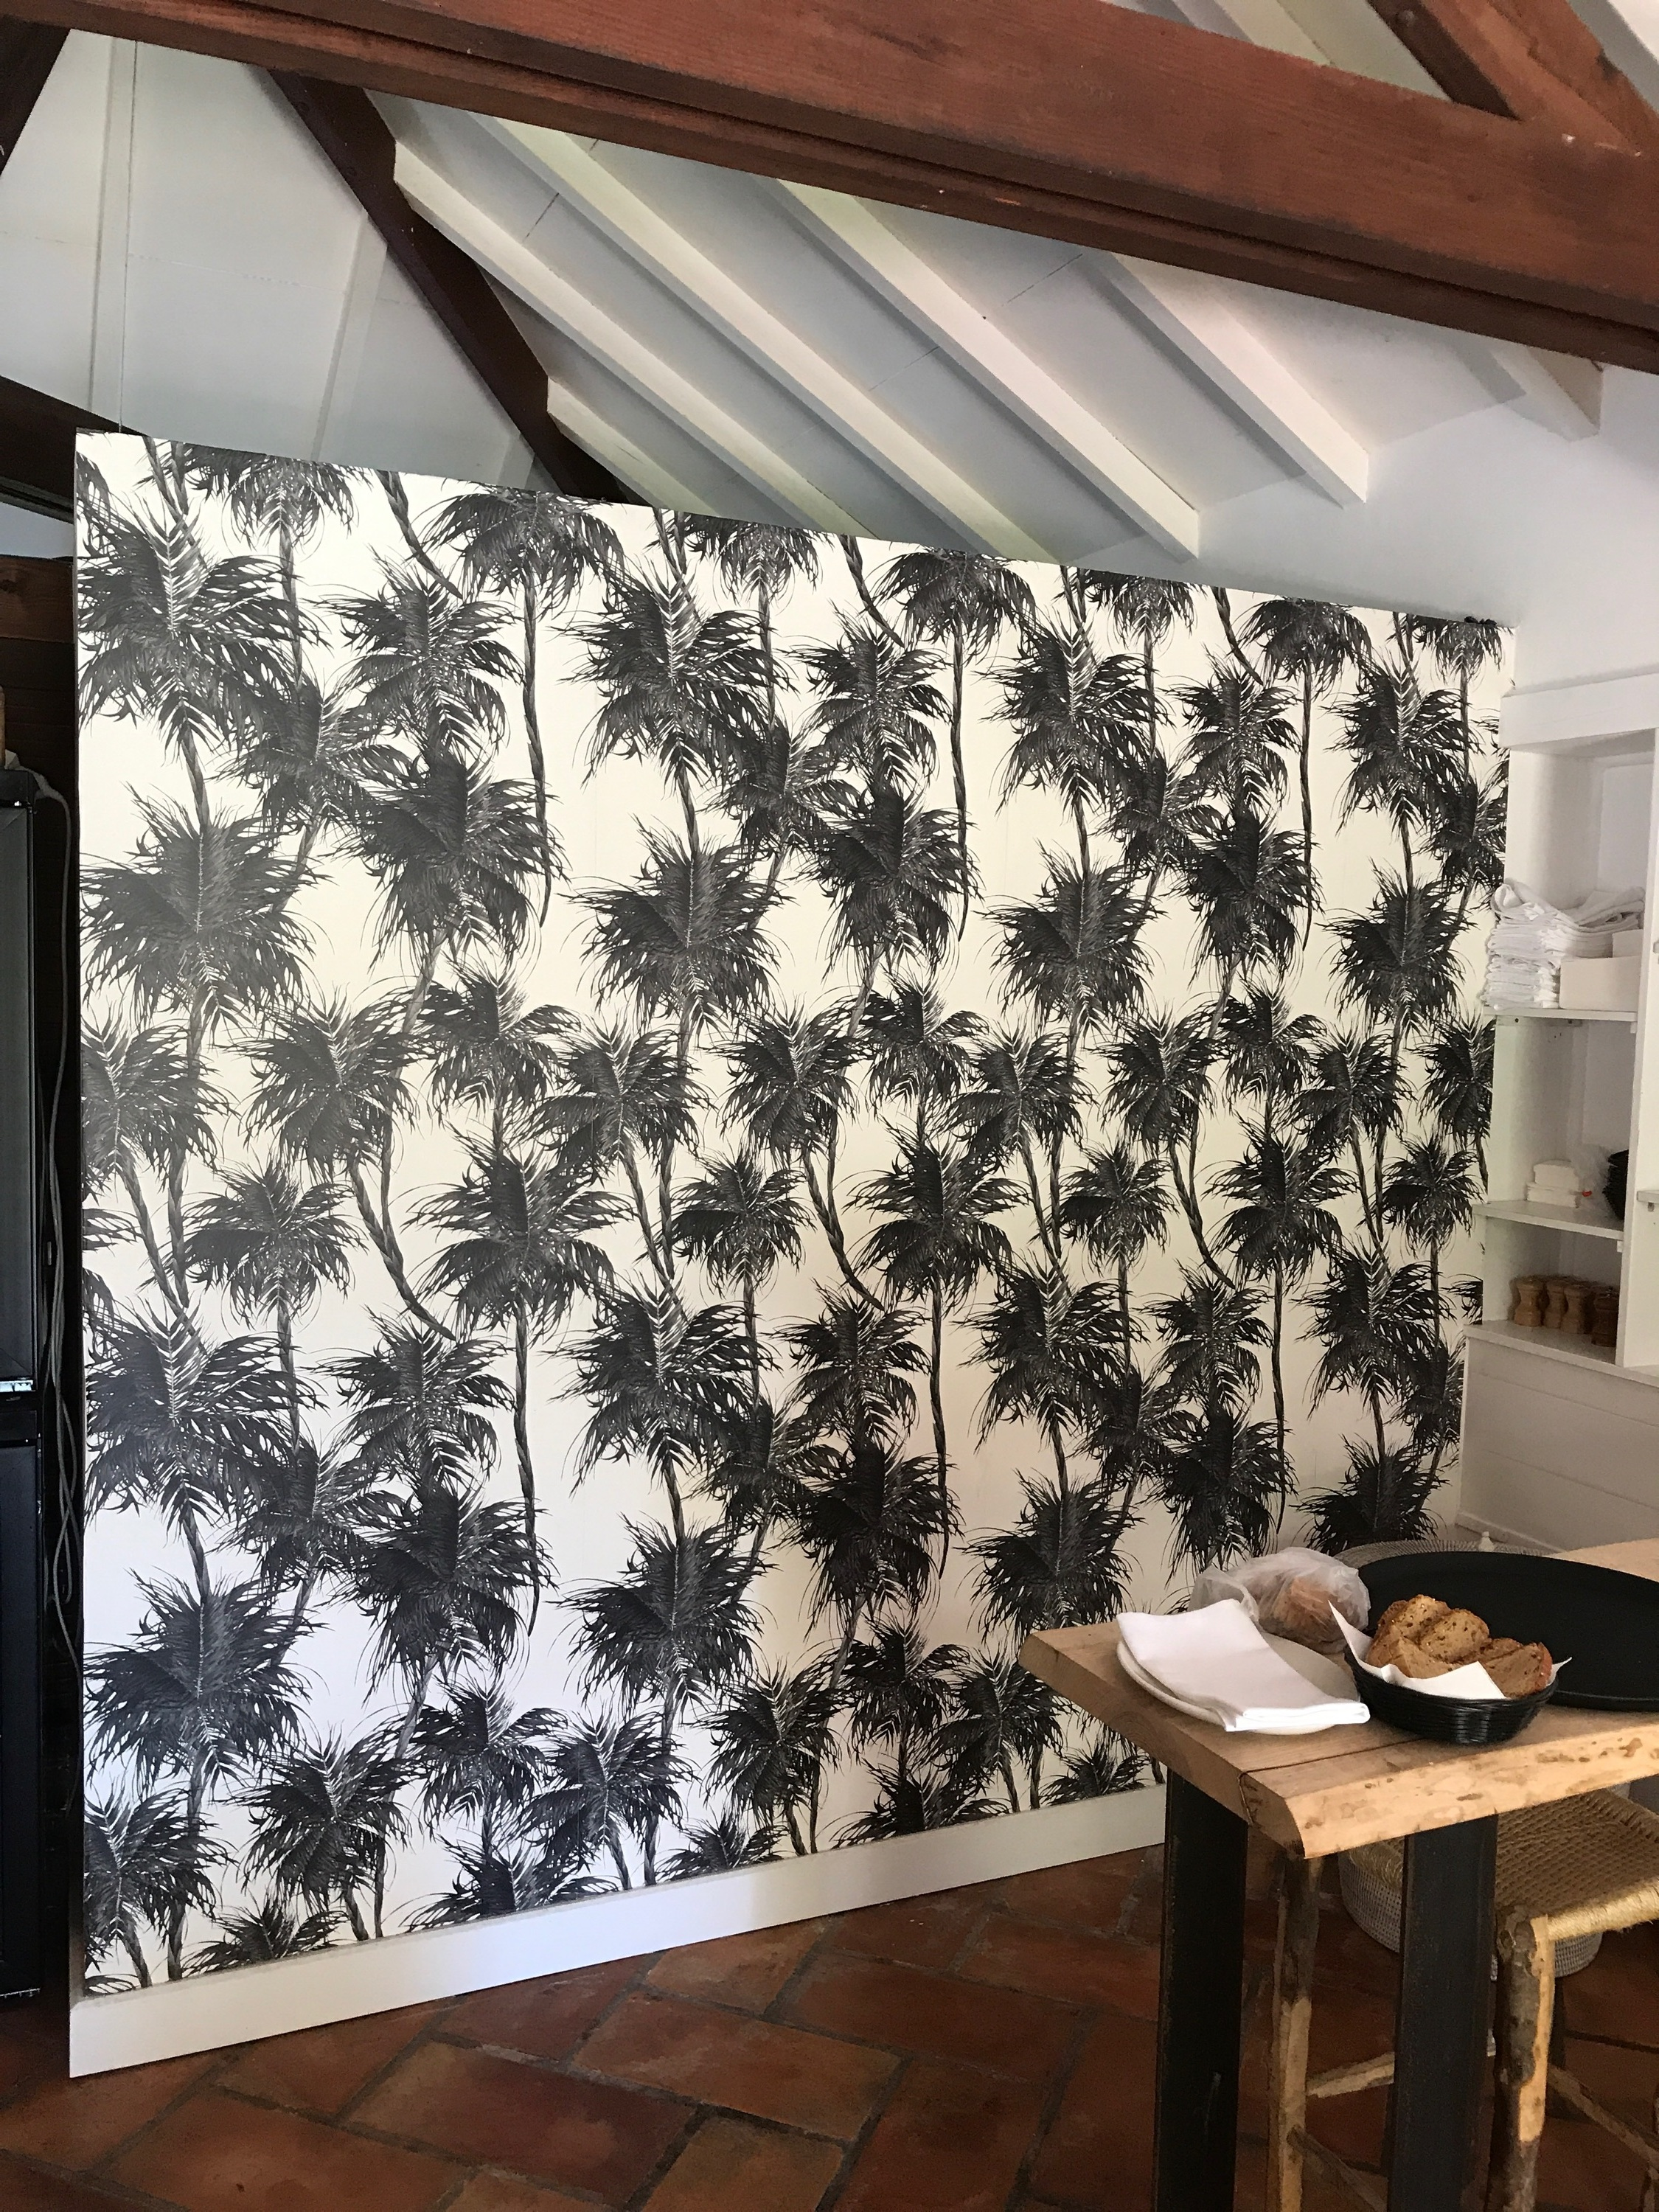 The Tropical_CandiceKayeDesign.JPG